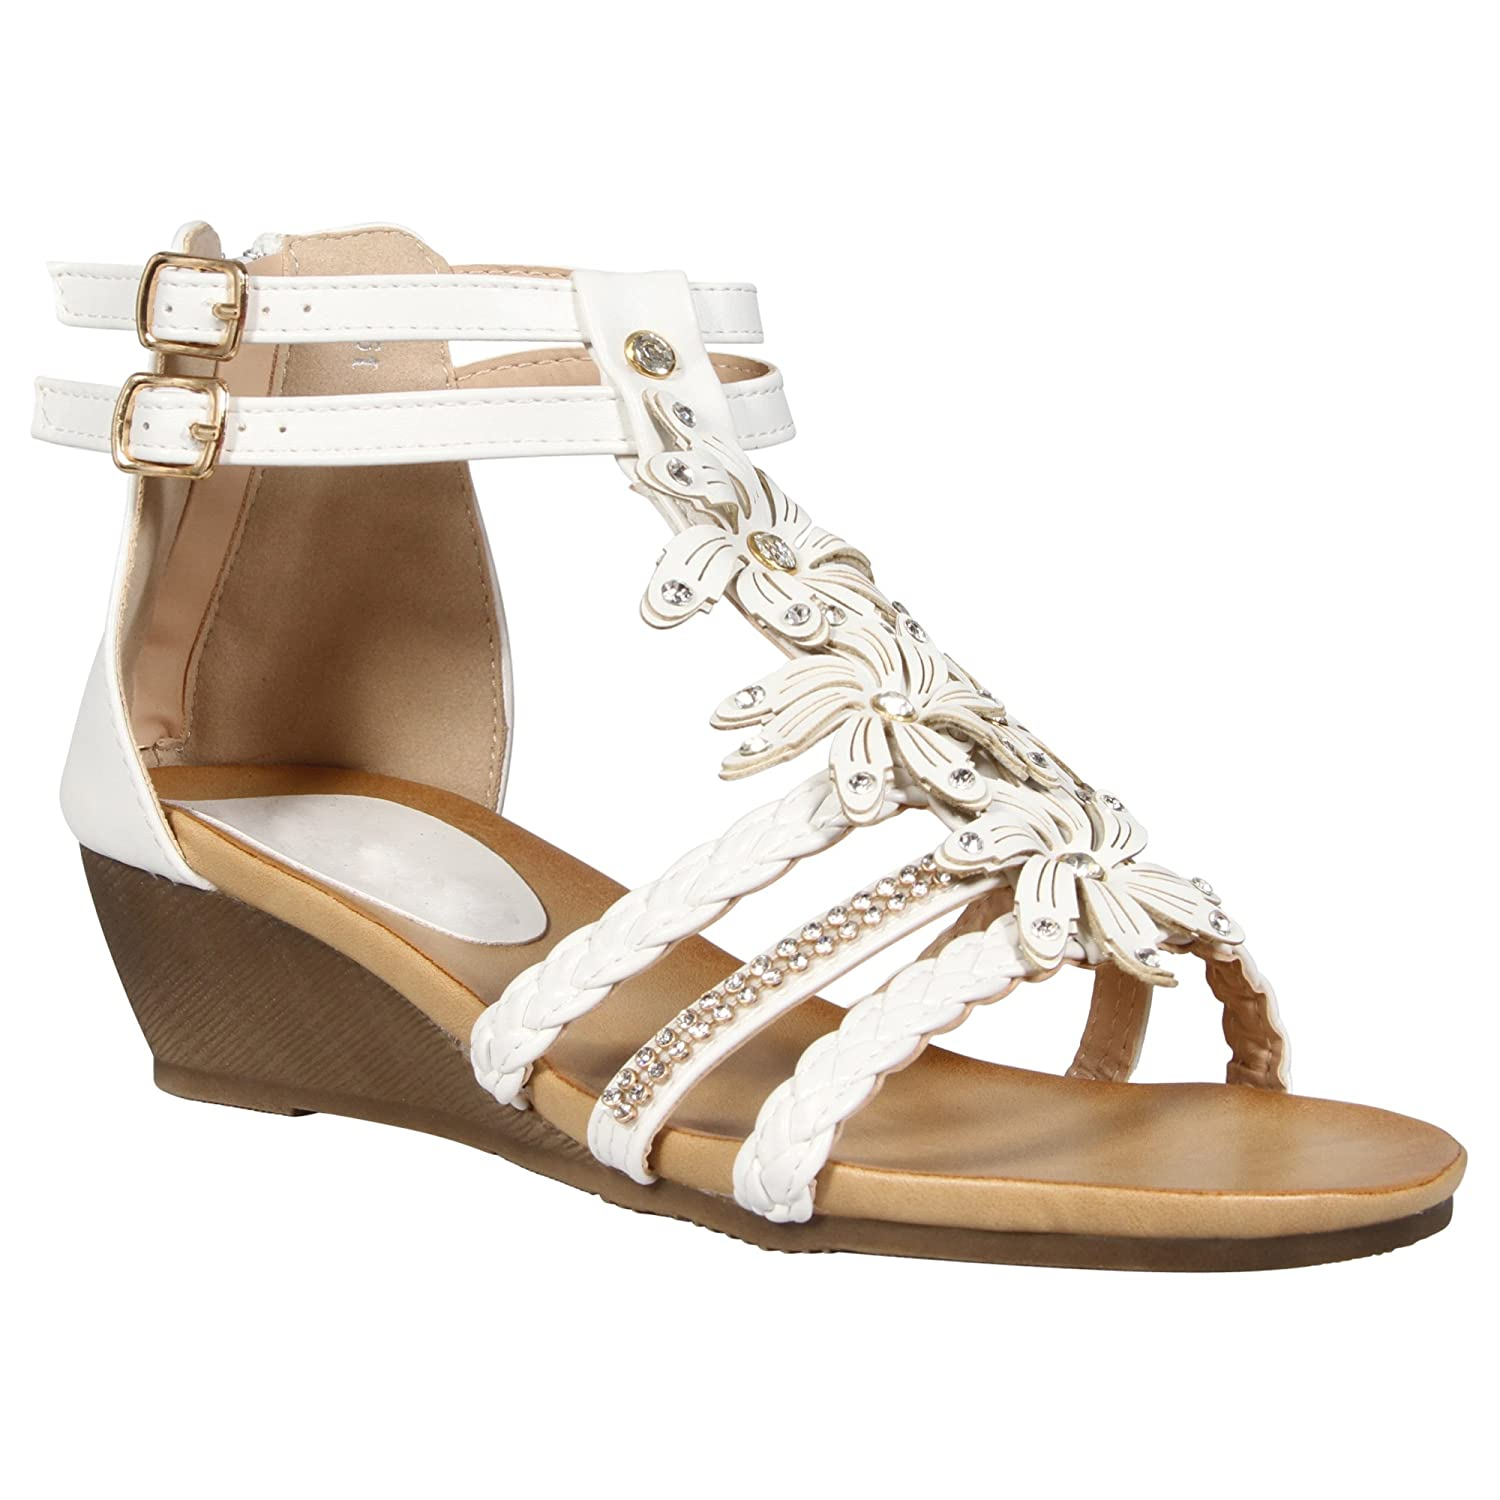 MyShoeStore LADIES WOMENS GLADIATOR SANDAL STRAPY WEDGE SUMMER FLOWER BEACH  SANDALS LOW HEEL BACK ZIP SHOES SIZE 3-8  Amazon.co.uk  Shoes   Bags 84439a7d85